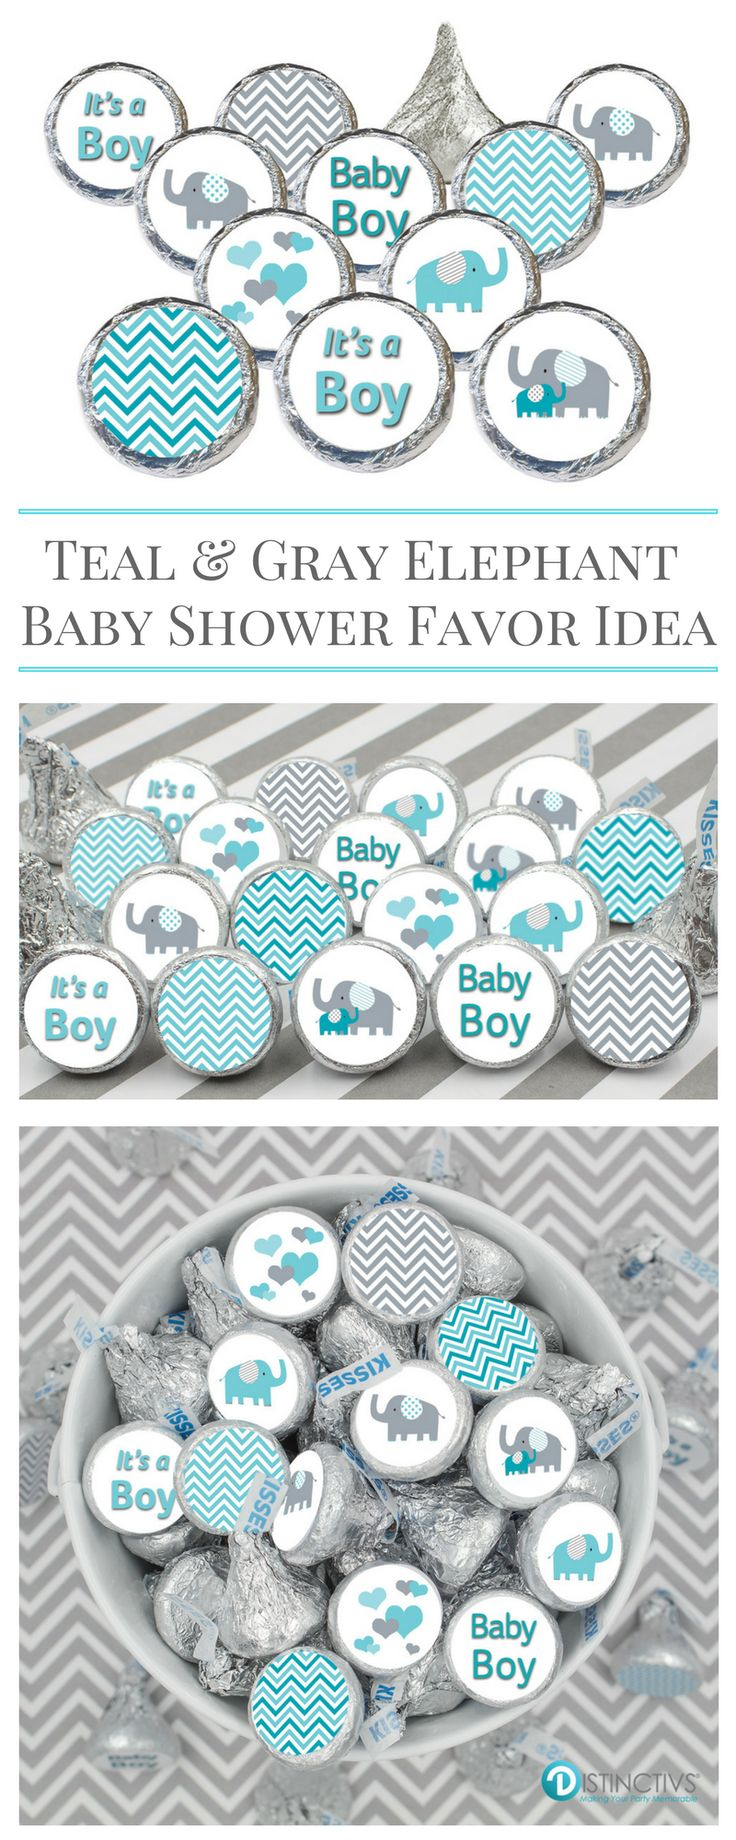 boys shower ideas won elephant empty pin unique baby reveal your for that party gender t boy wallet